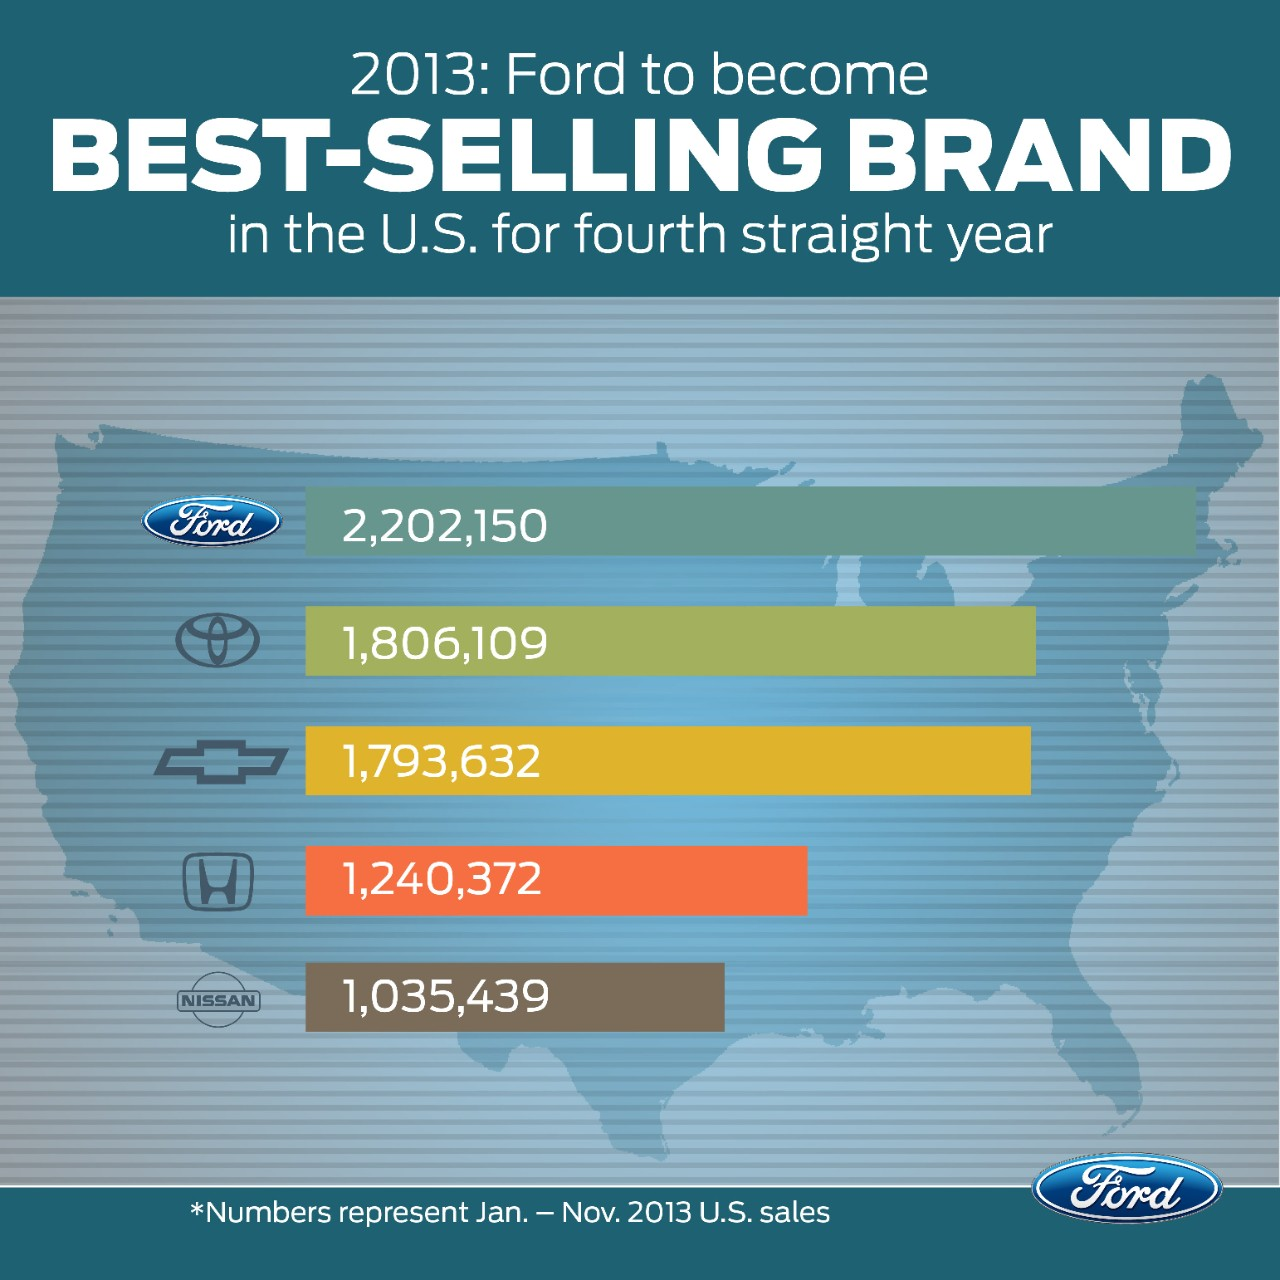 Selling: Selling 2.4 Million Vehicles In 2013, Ford To Take The